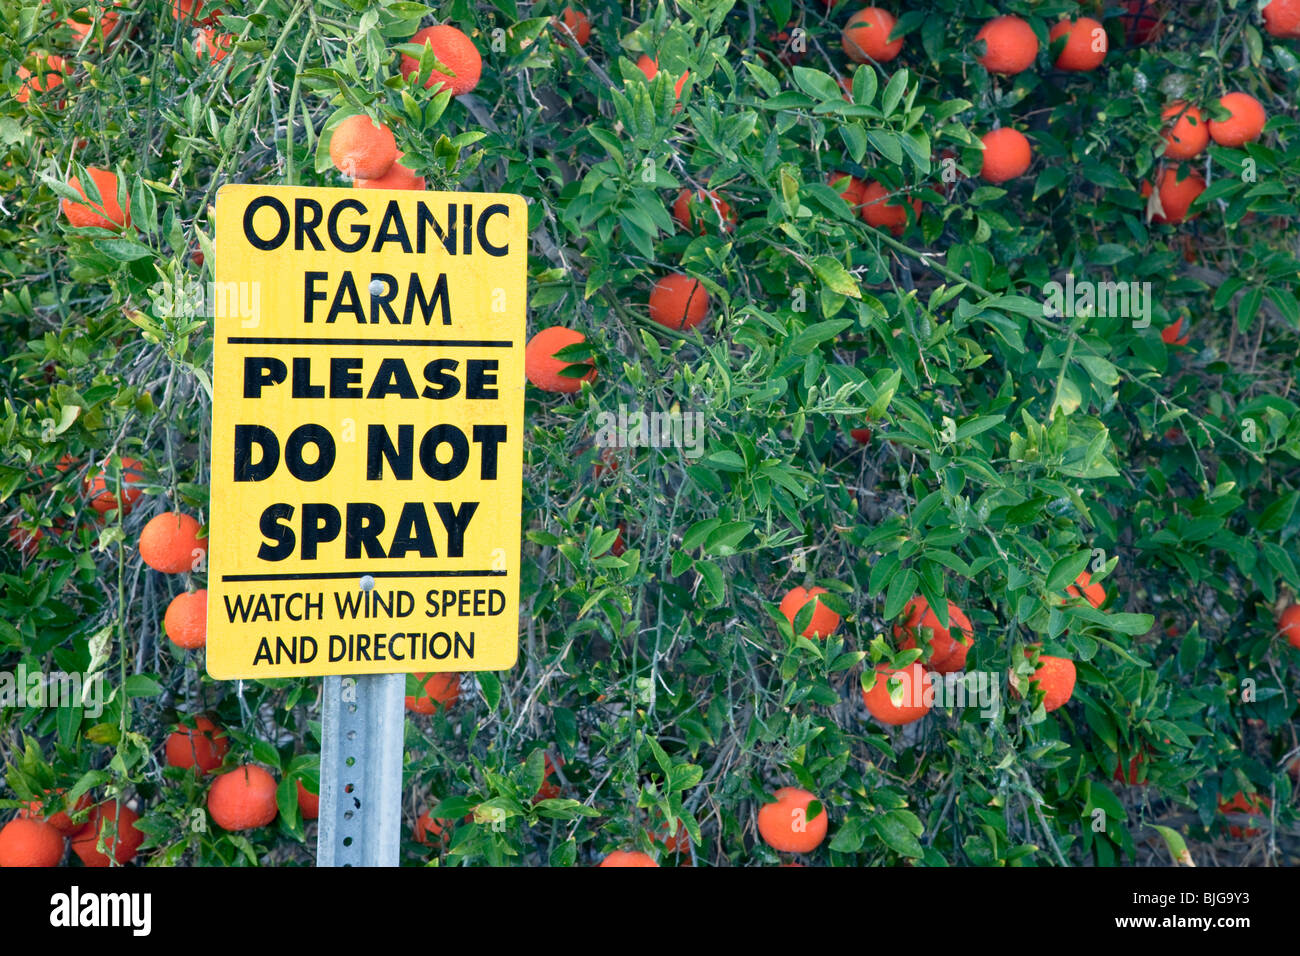 Sign 'Organic Farm - Please Do Not Spray'. - Stock Image